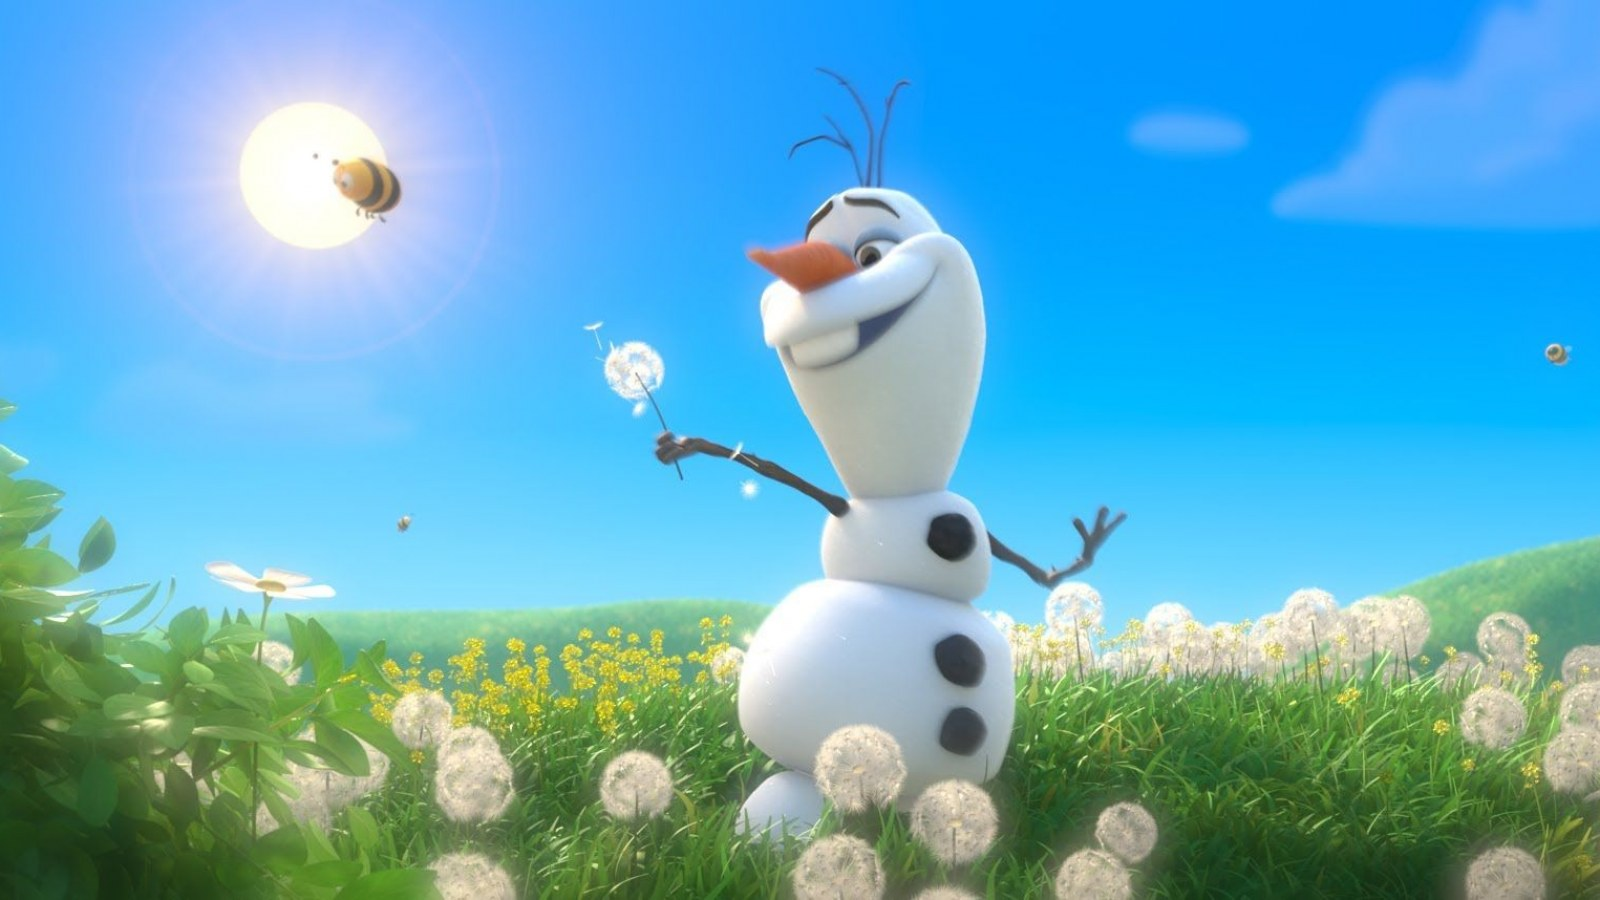 At Home With Olaf How To Watch The Frozen Inspired Shorts For Your Stir Crazy Kids